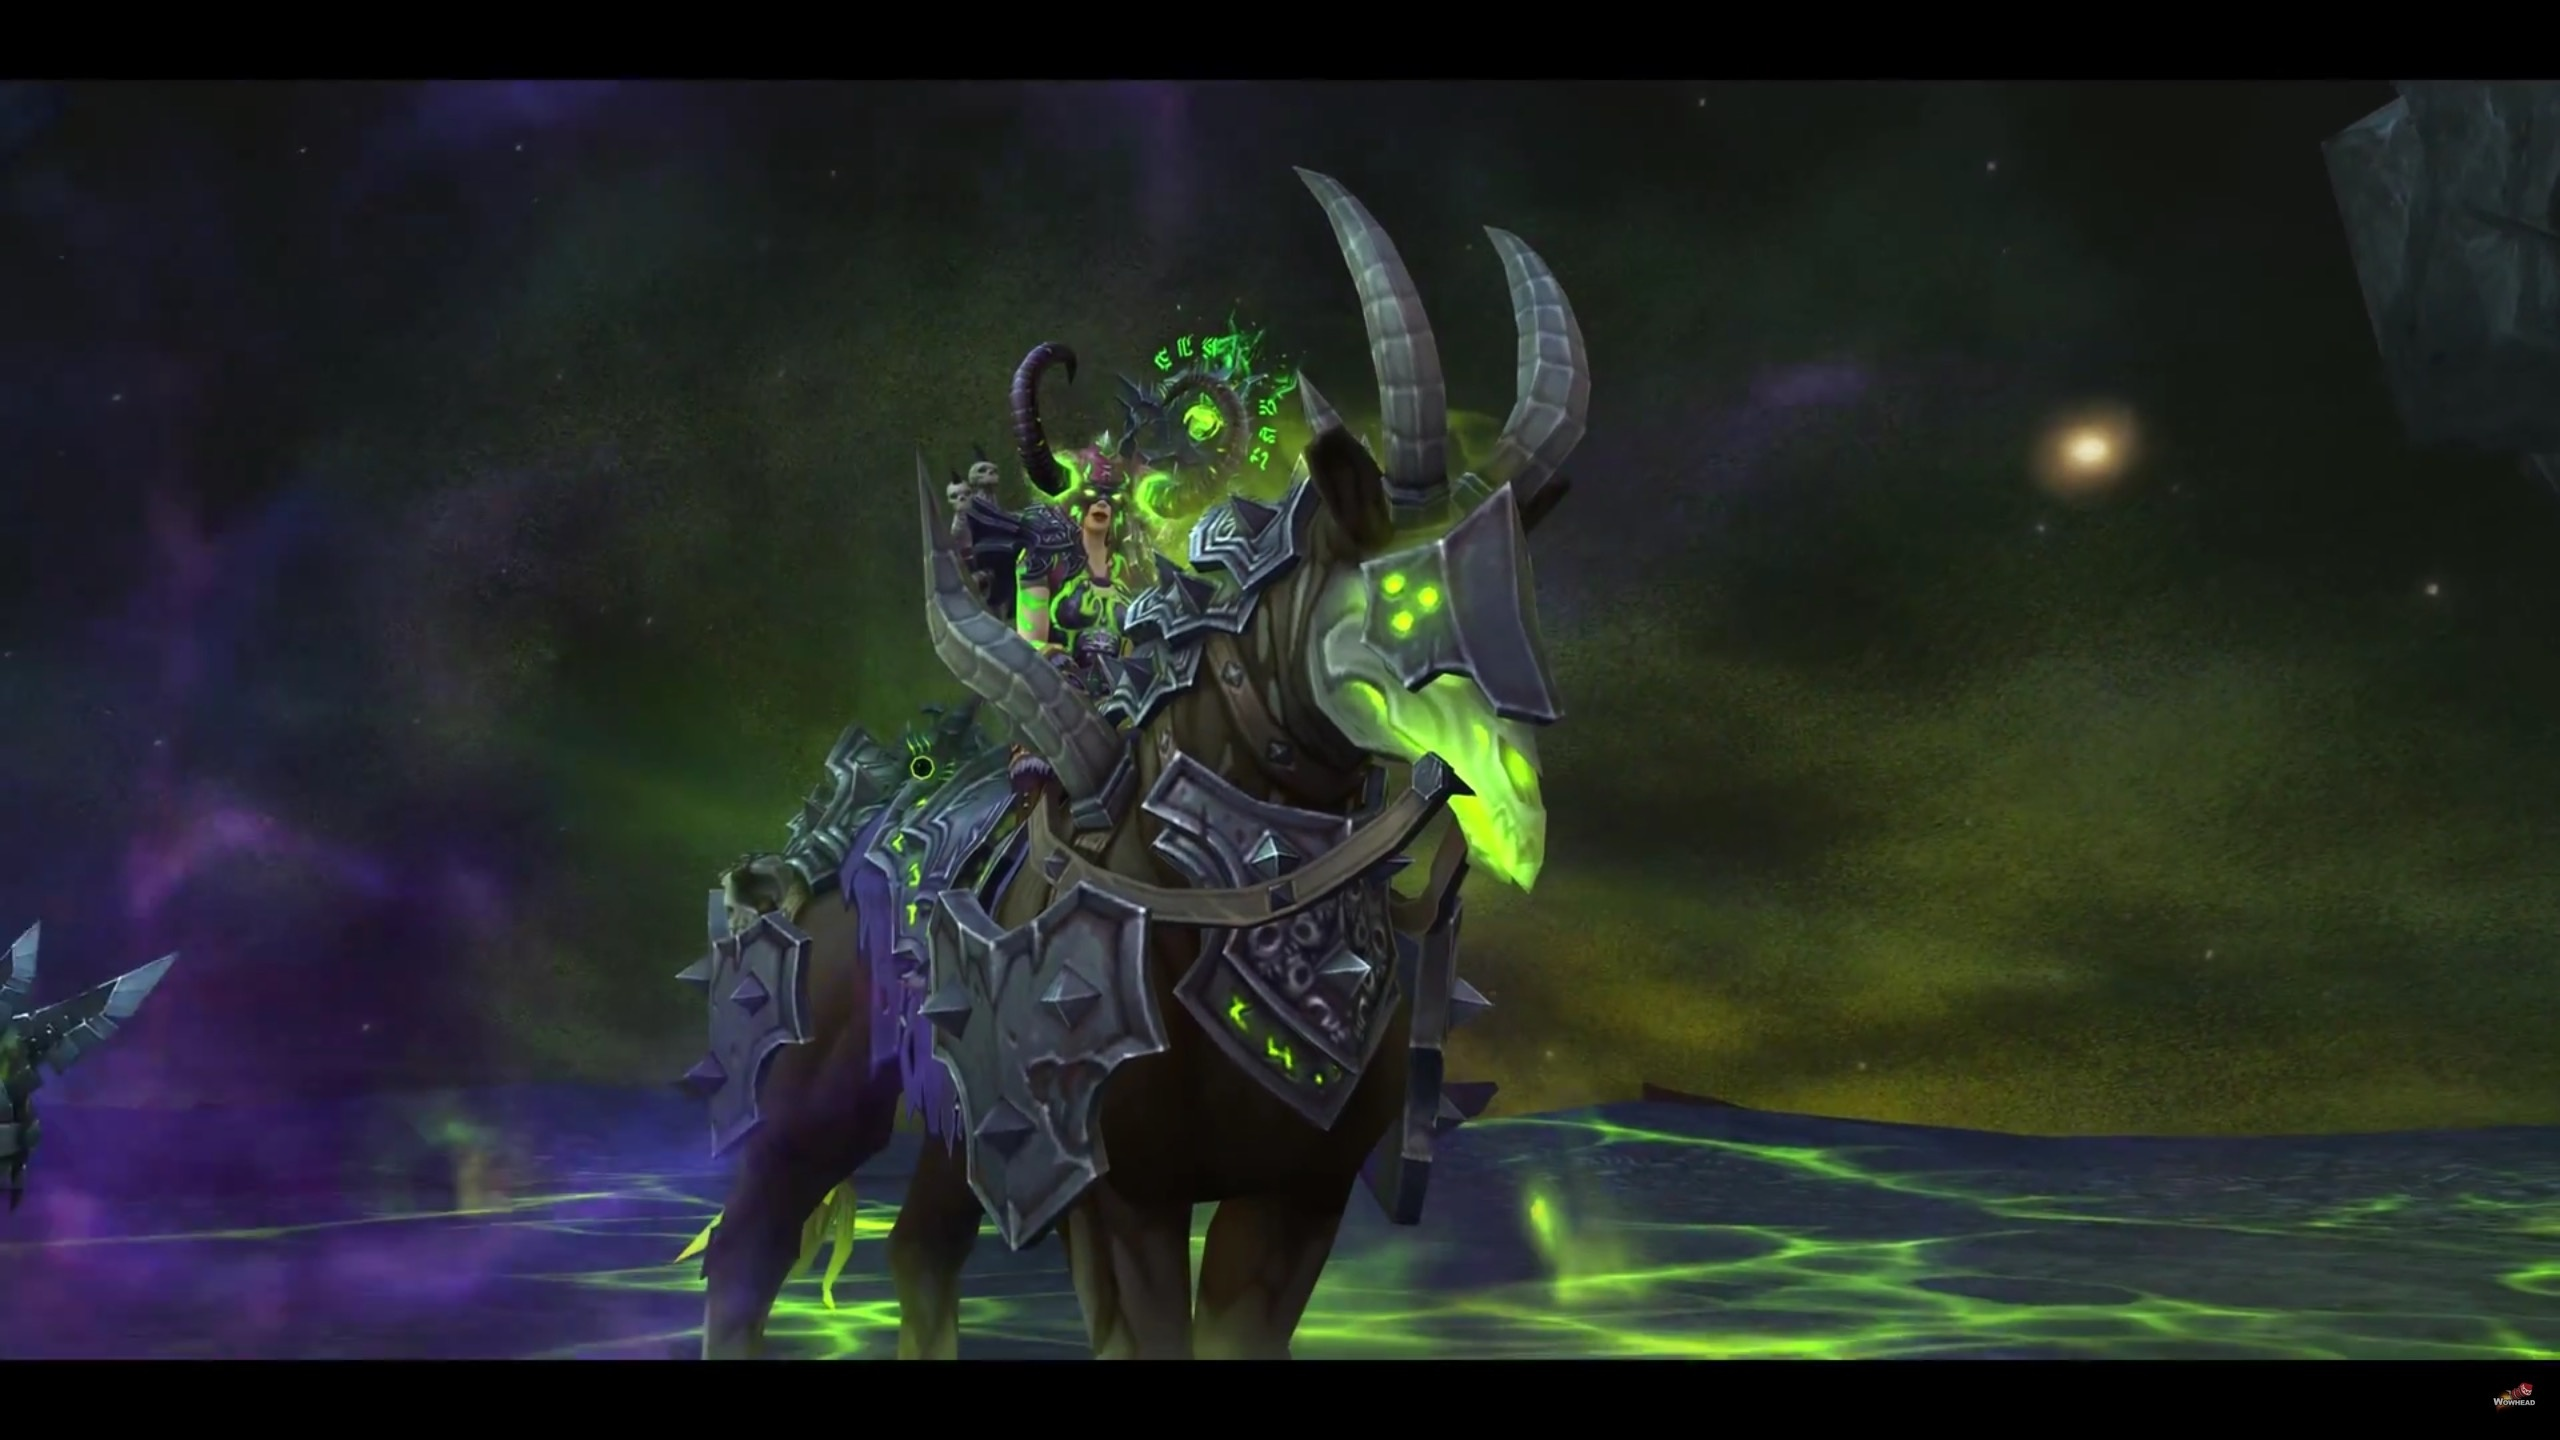 Fall Of The Lich King Wallpaper Warlock Class Mount And Quests Netherlord S Dreadsteed